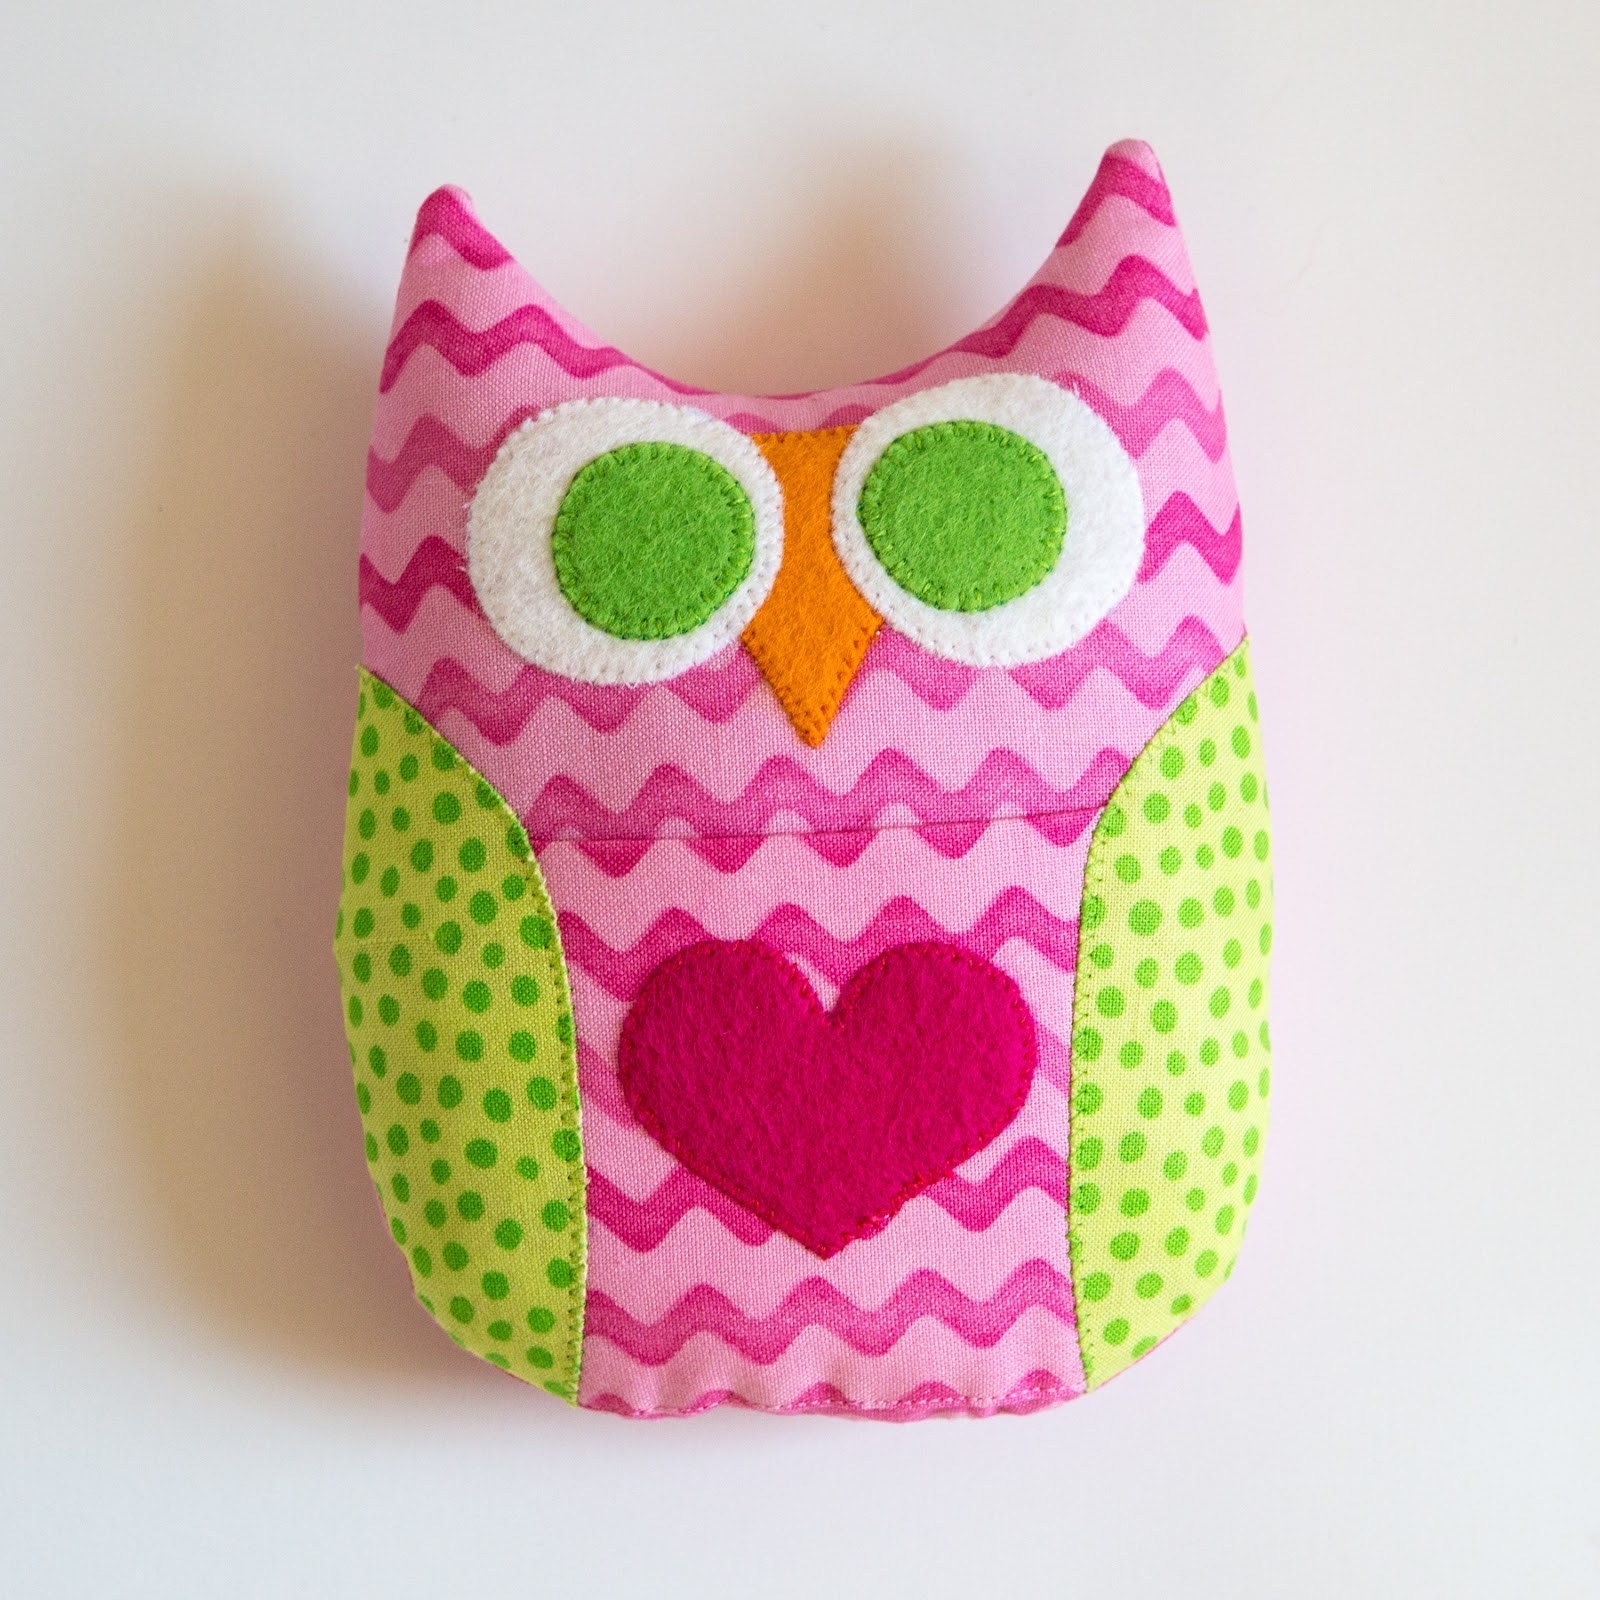 .: November 23 - Tooth Fairy Pillow for Girls